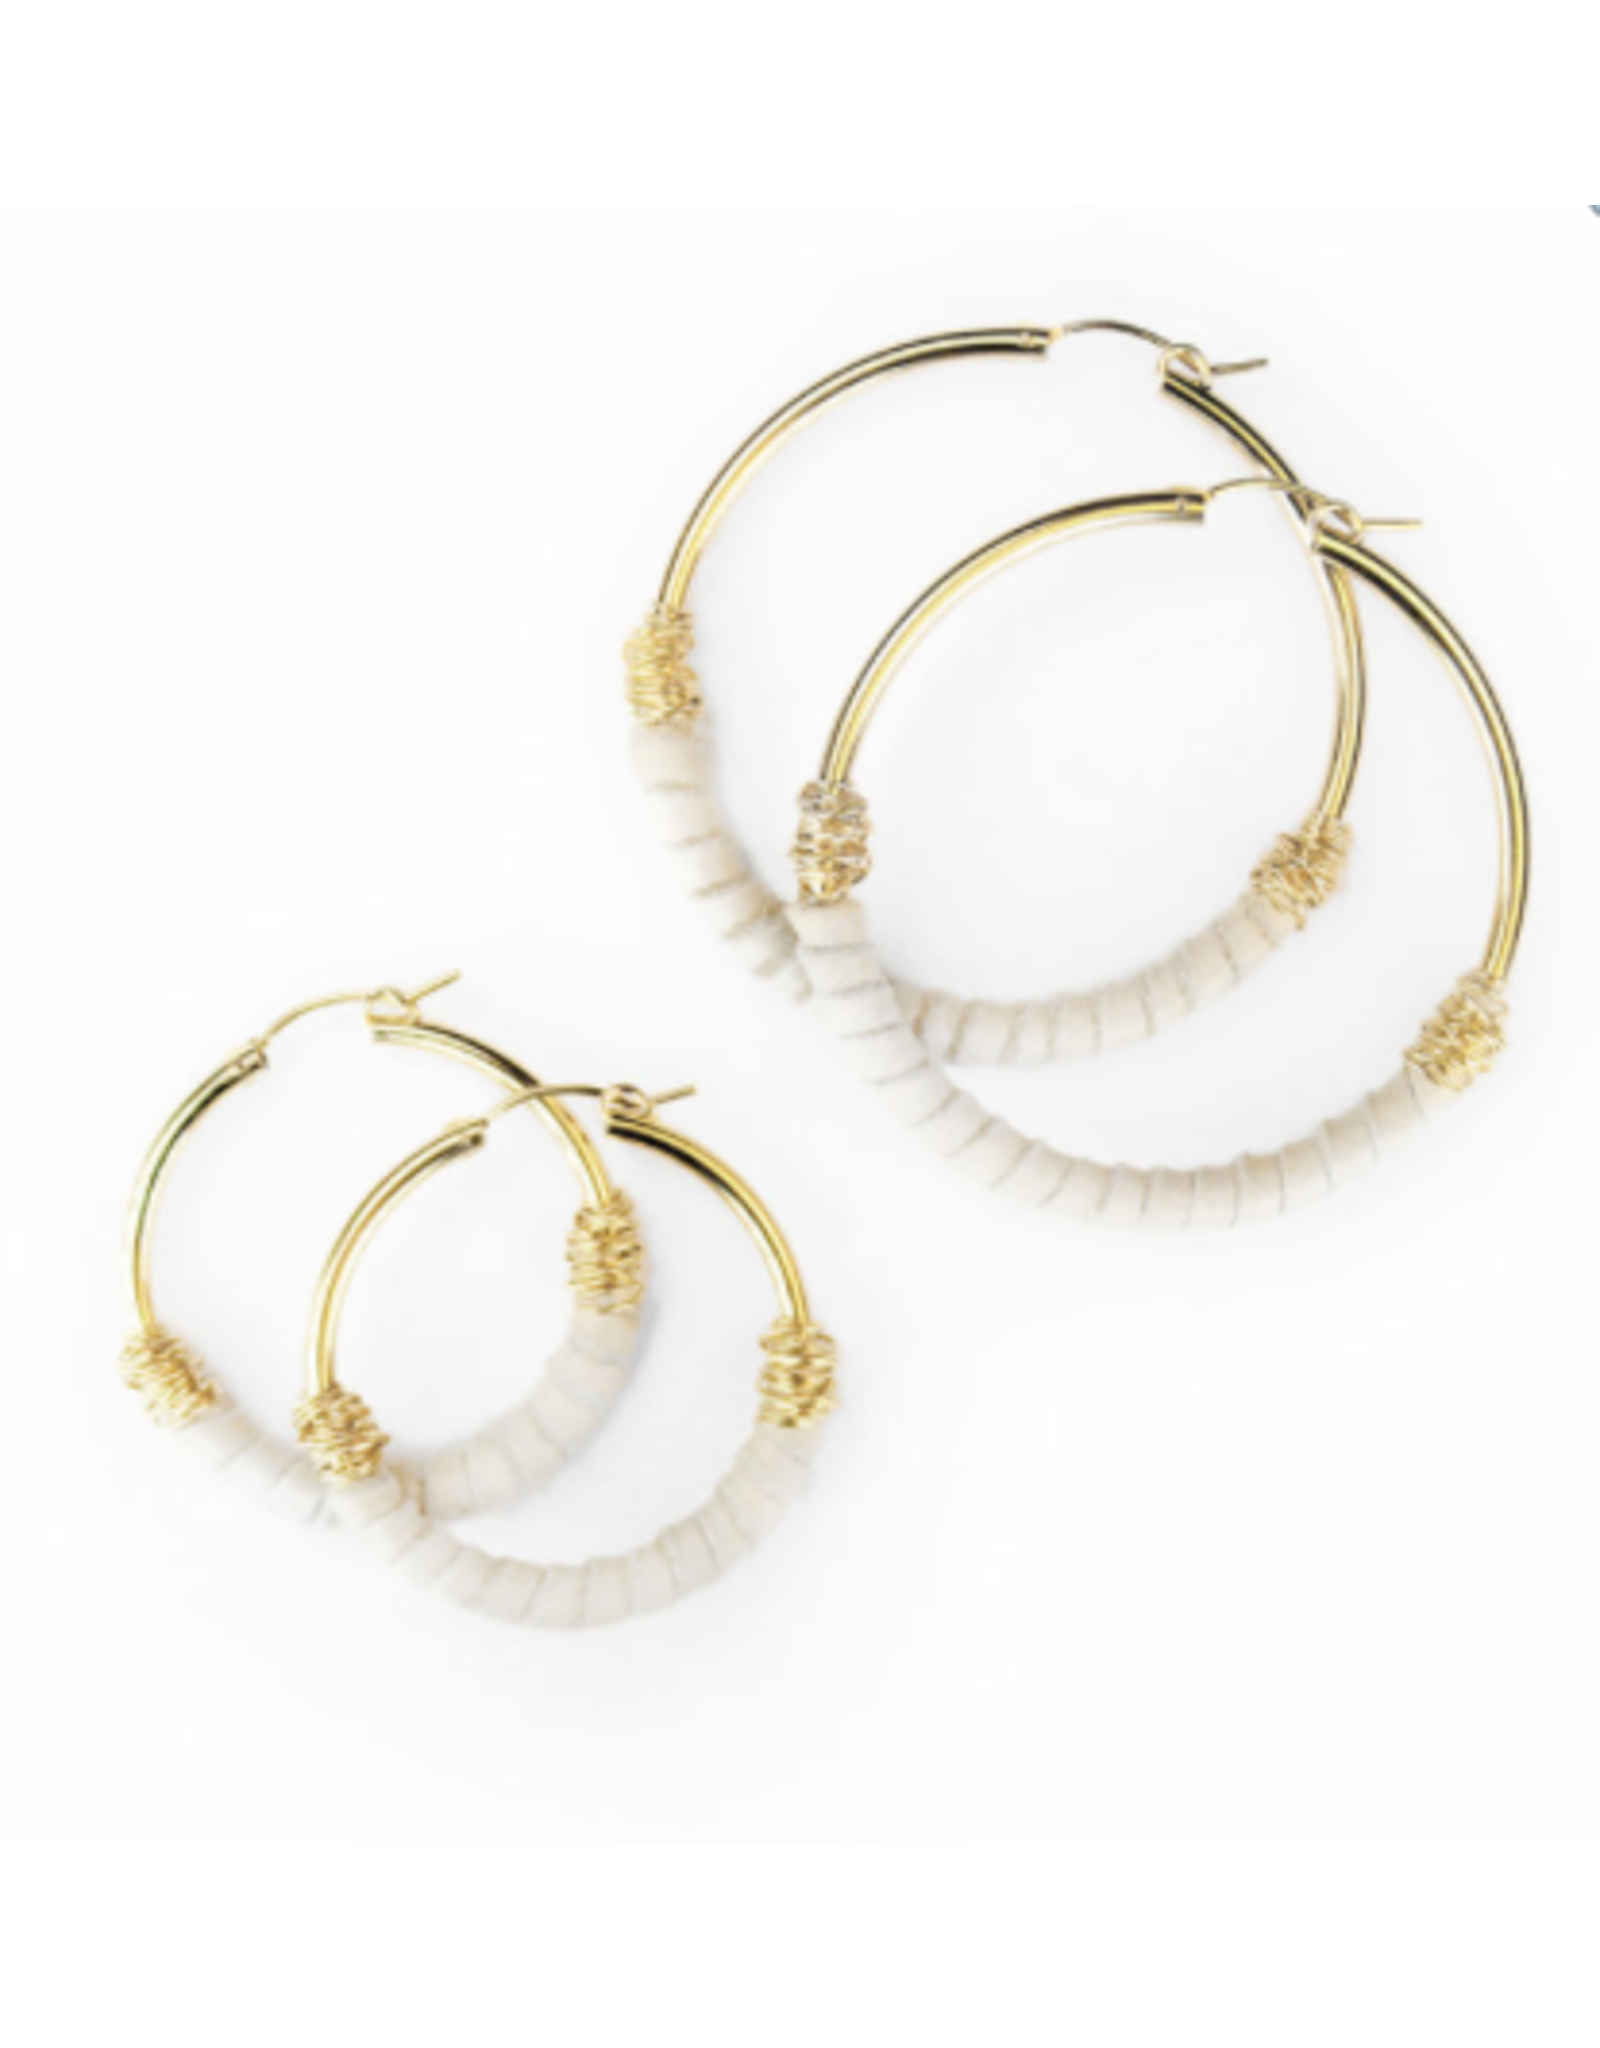 Bloom Jewelry Leather Wrapped Large Hoops